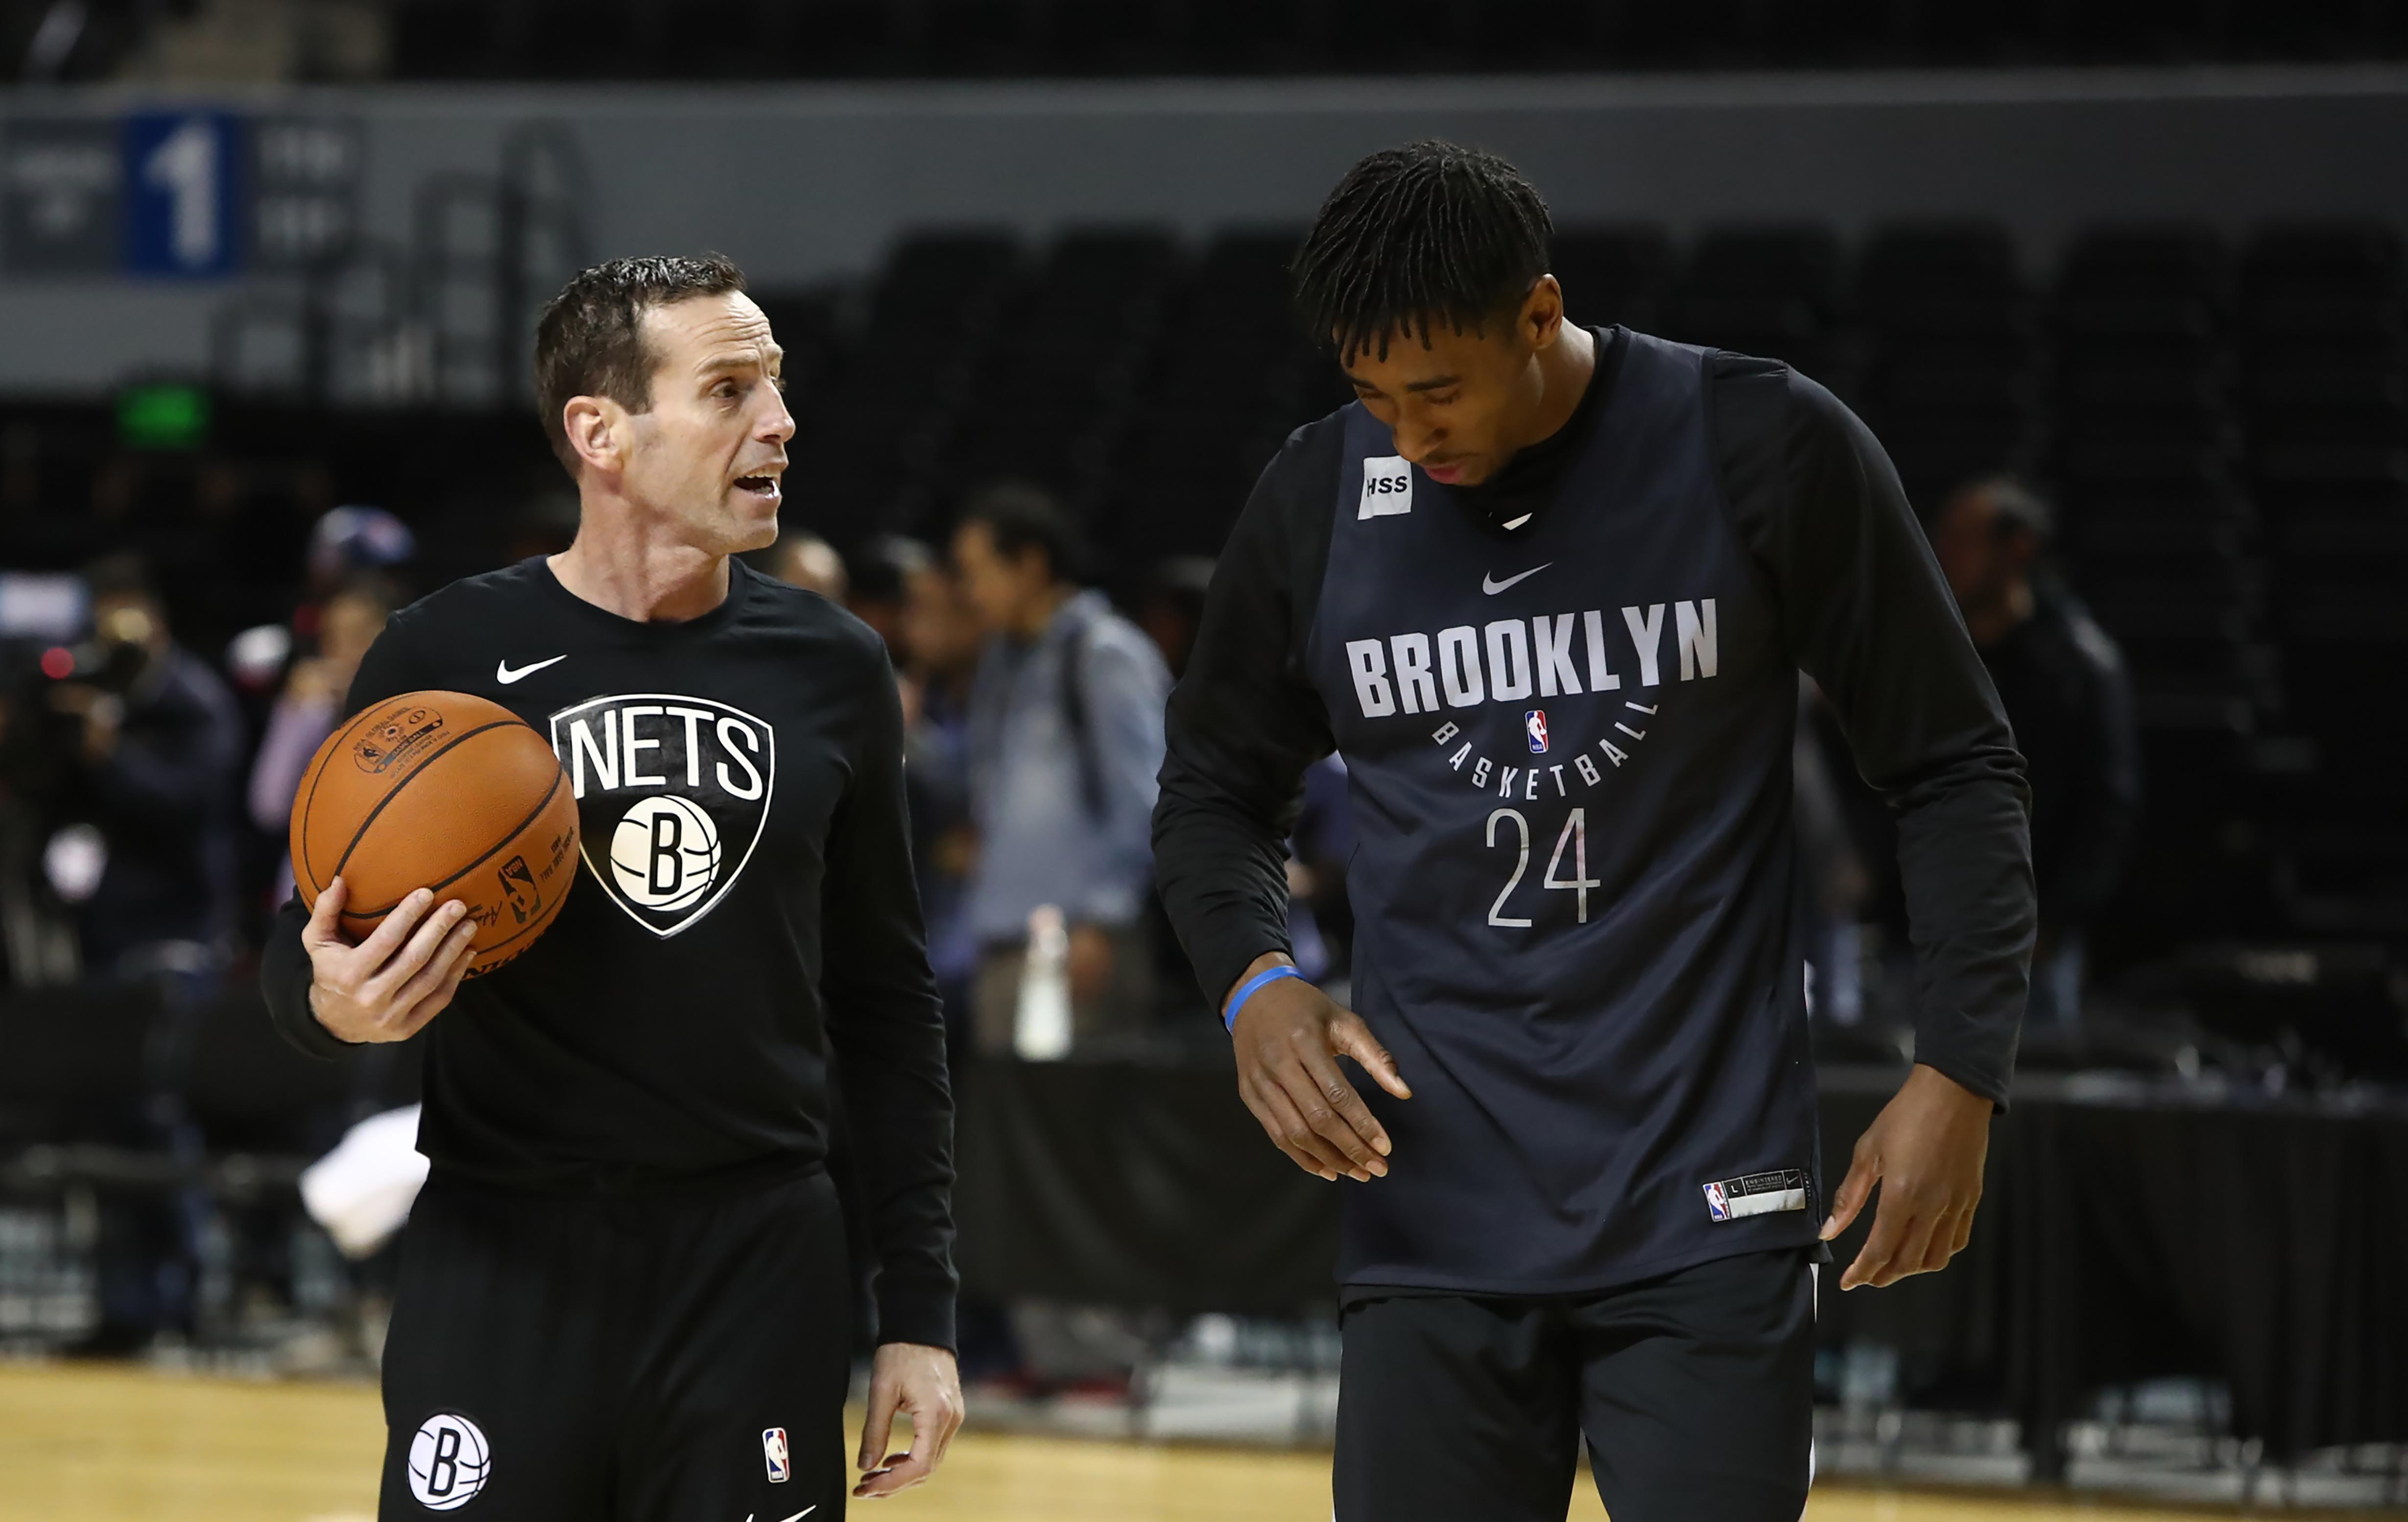 Long Island hoop lessons launched Kenny Atkinson s journey to the NBA.